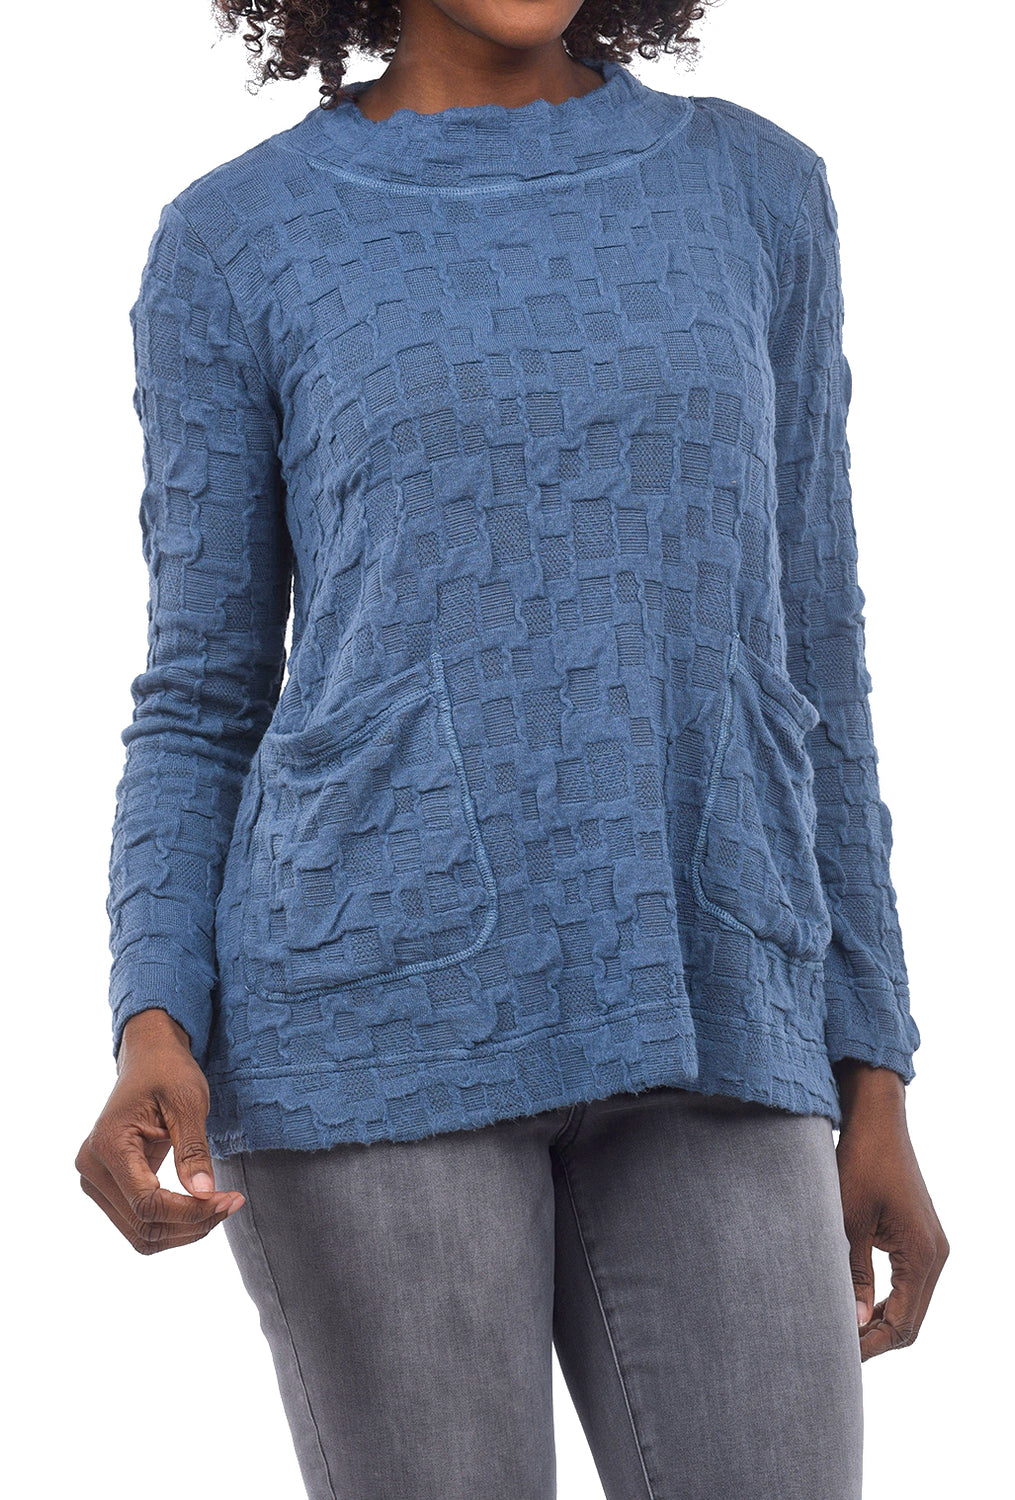 Cut Loose Pucker Pocket Sweater, Blueprint